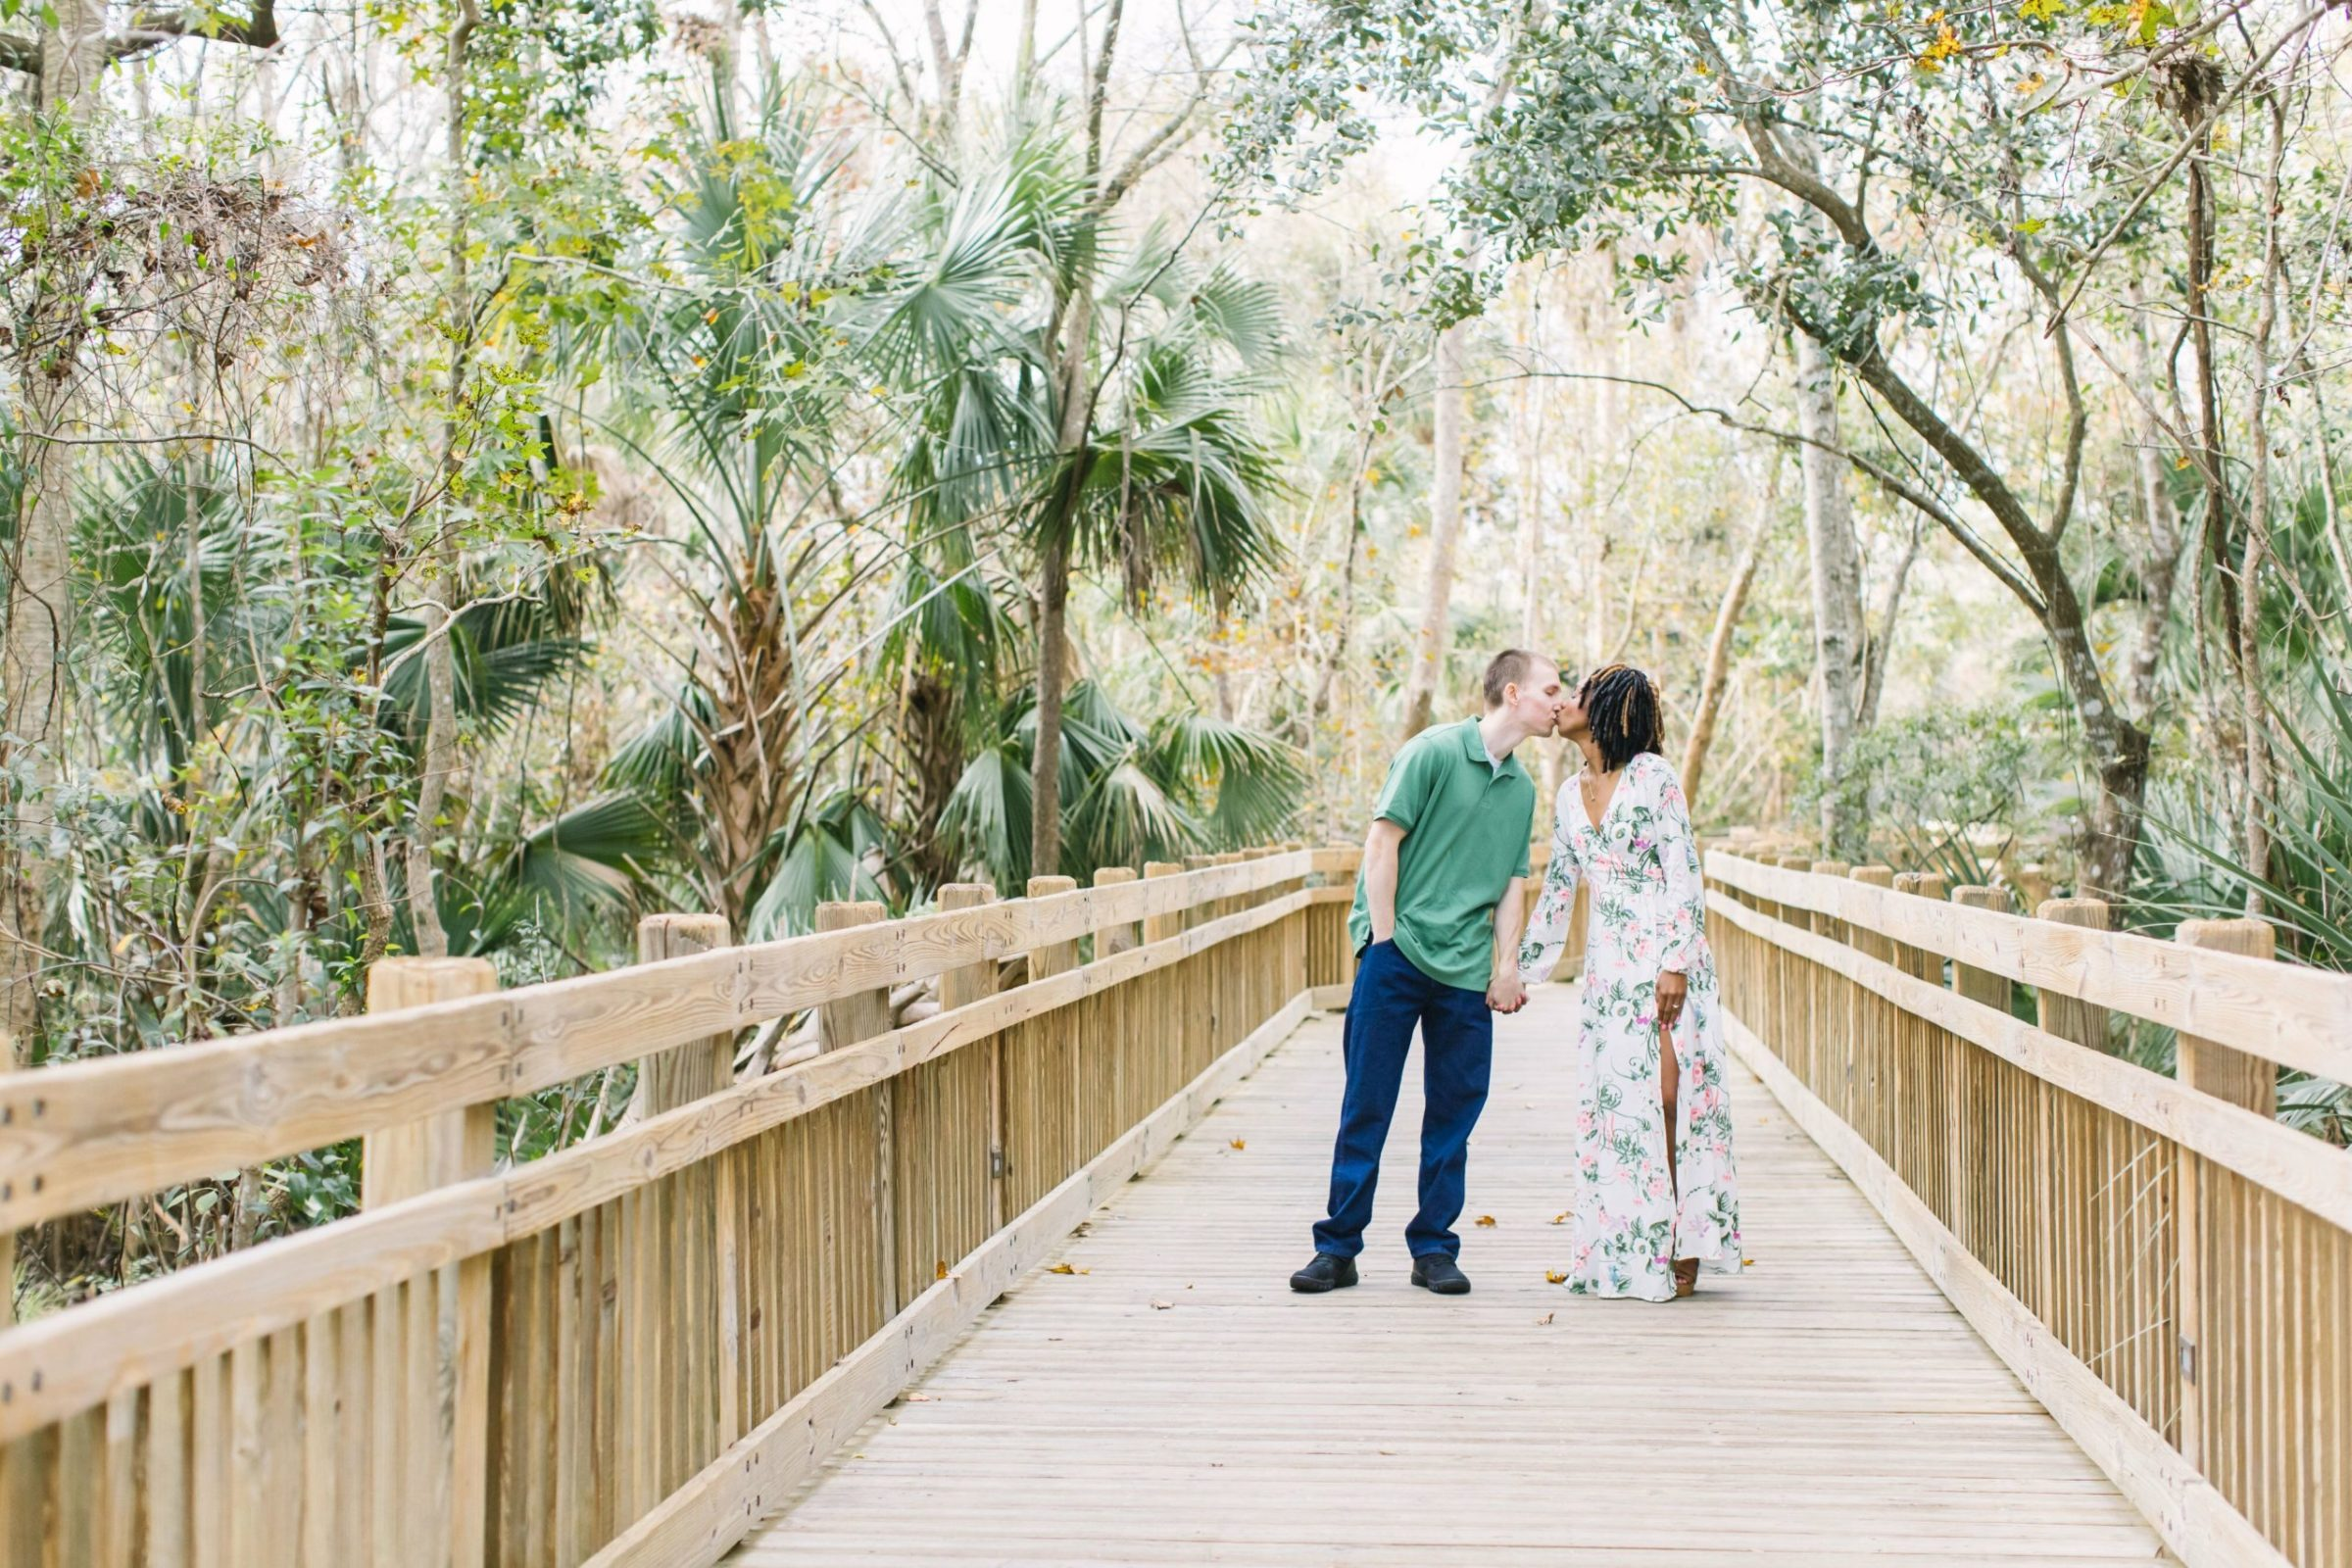 couple walking on park boardwalk through palm trees